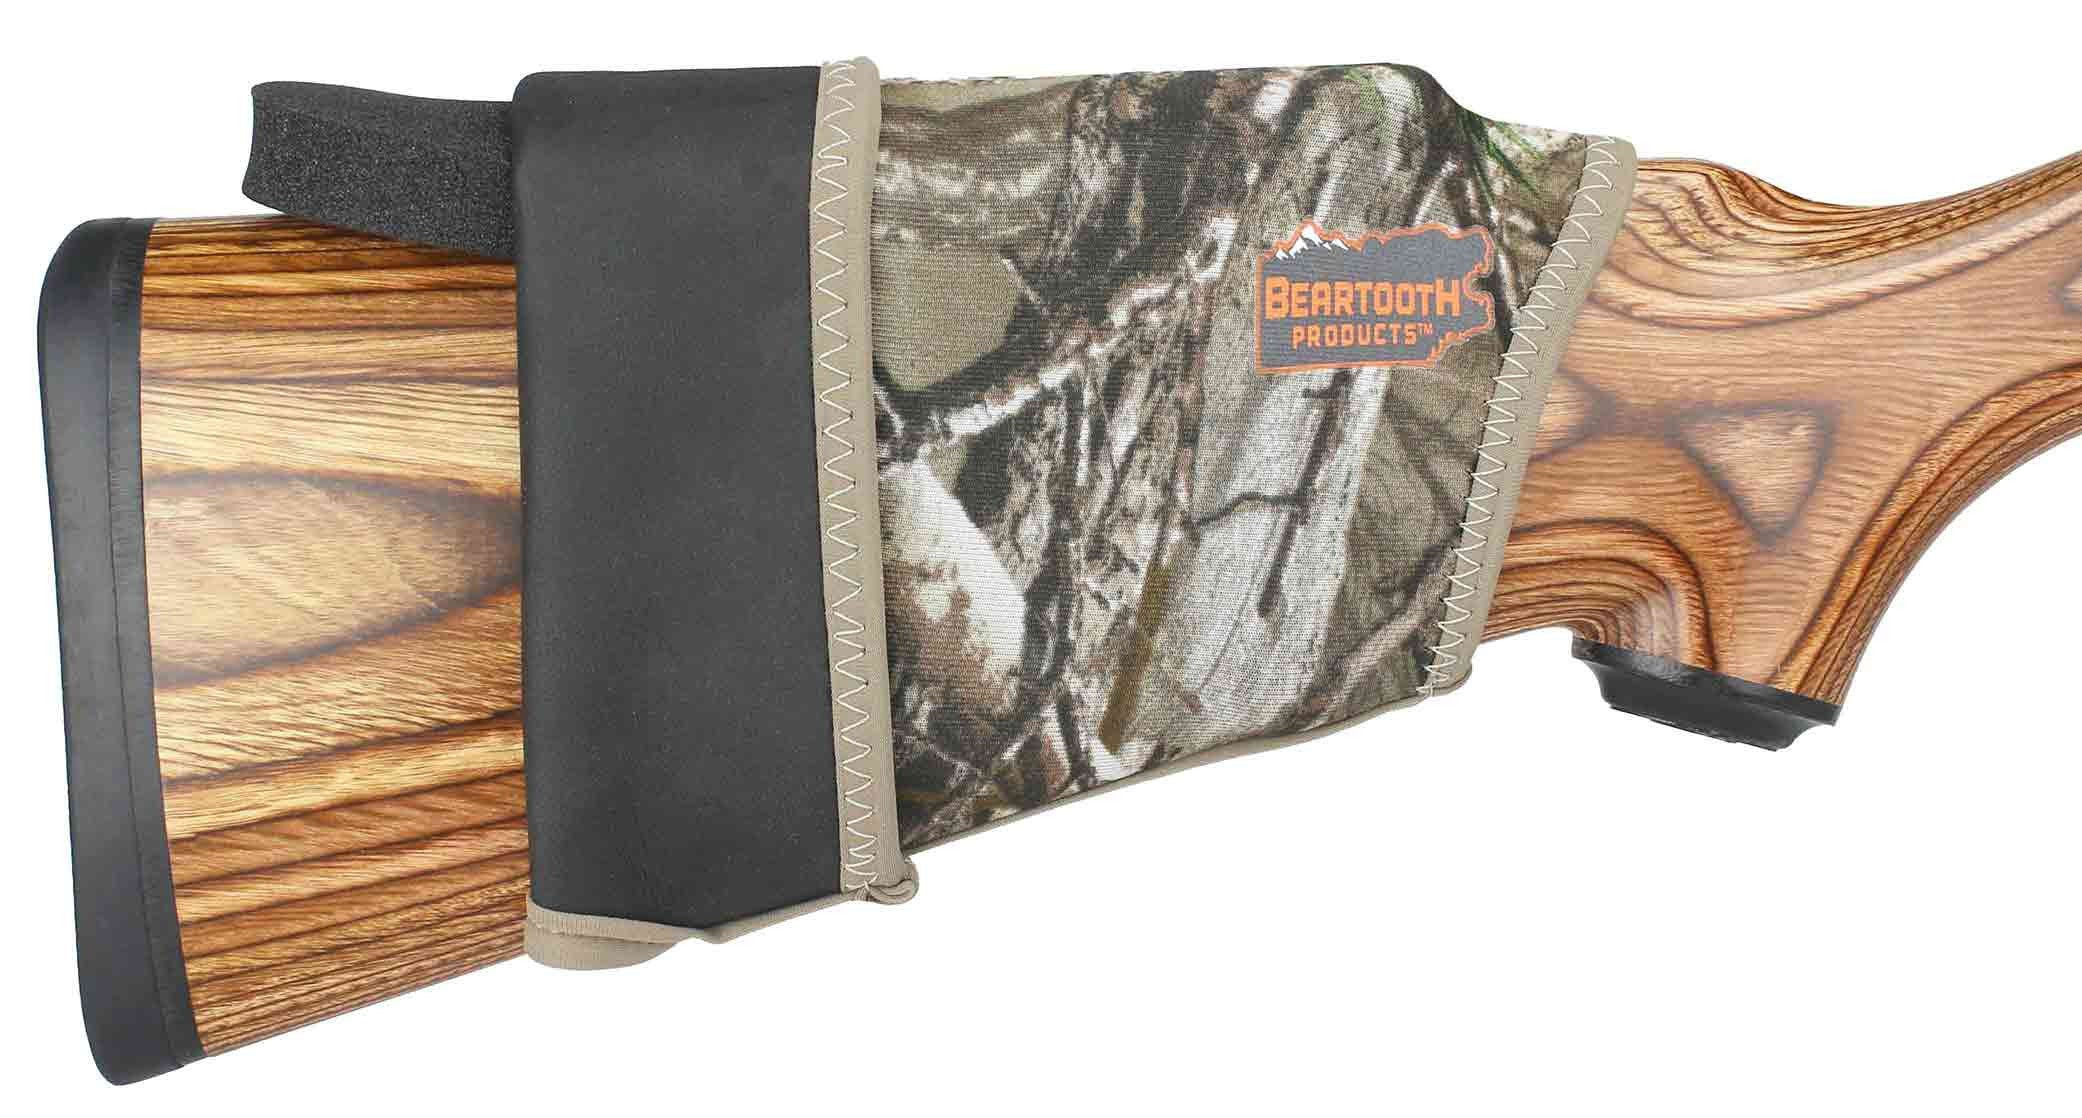 COMB RAISING KIT 2.0 - Shotgun Model in Realtree Xtra®